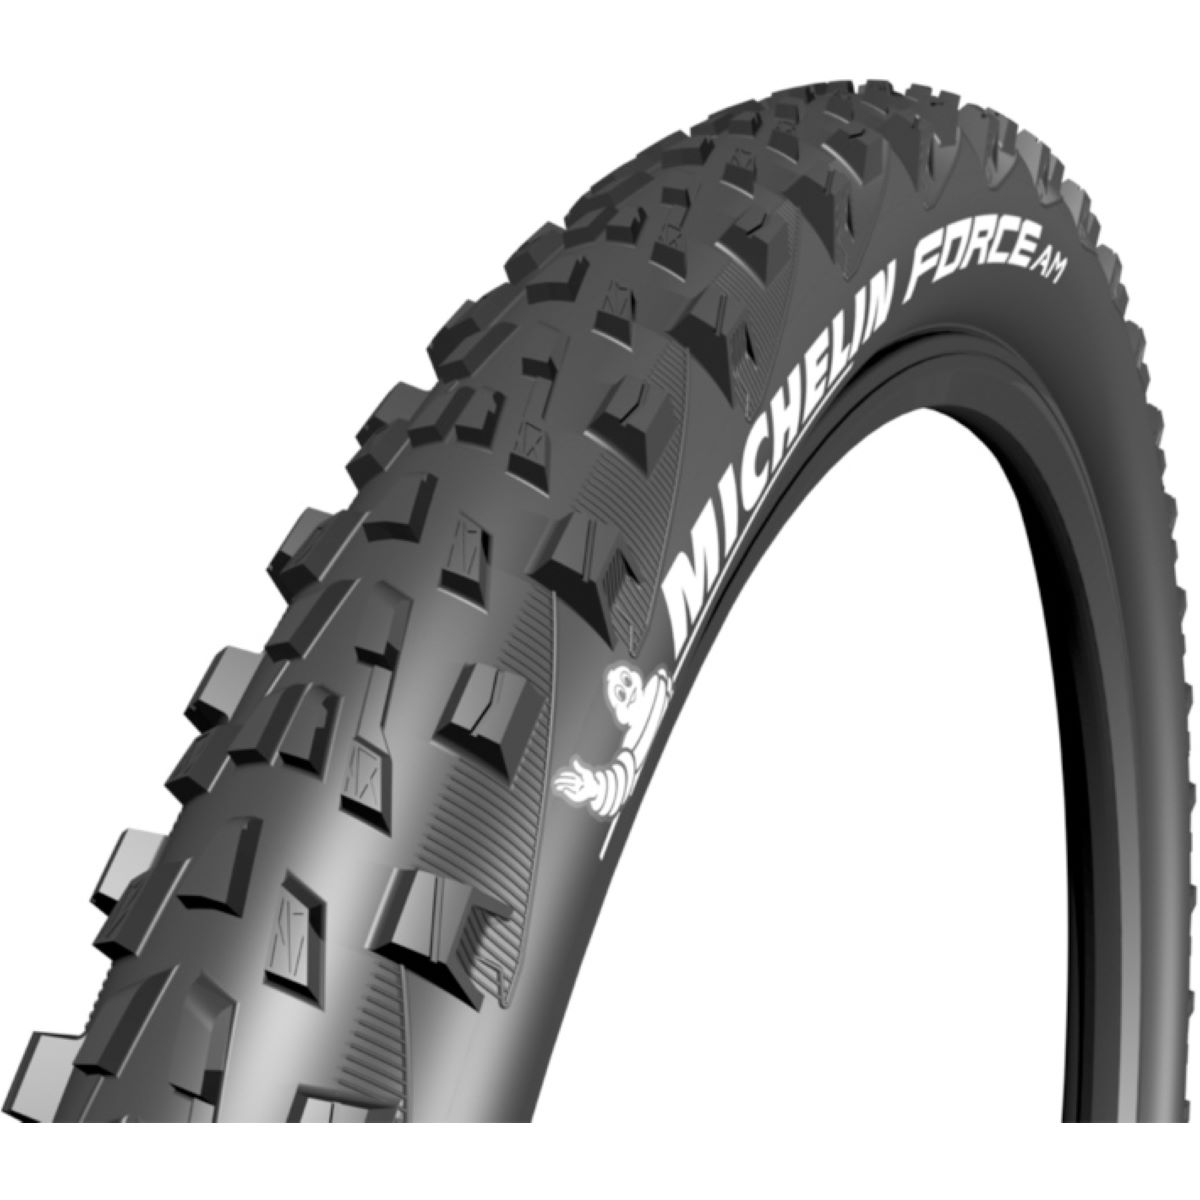 Pneu VTT Michelin Force AM Competition - 2.25' 27.5' Noir Pneus